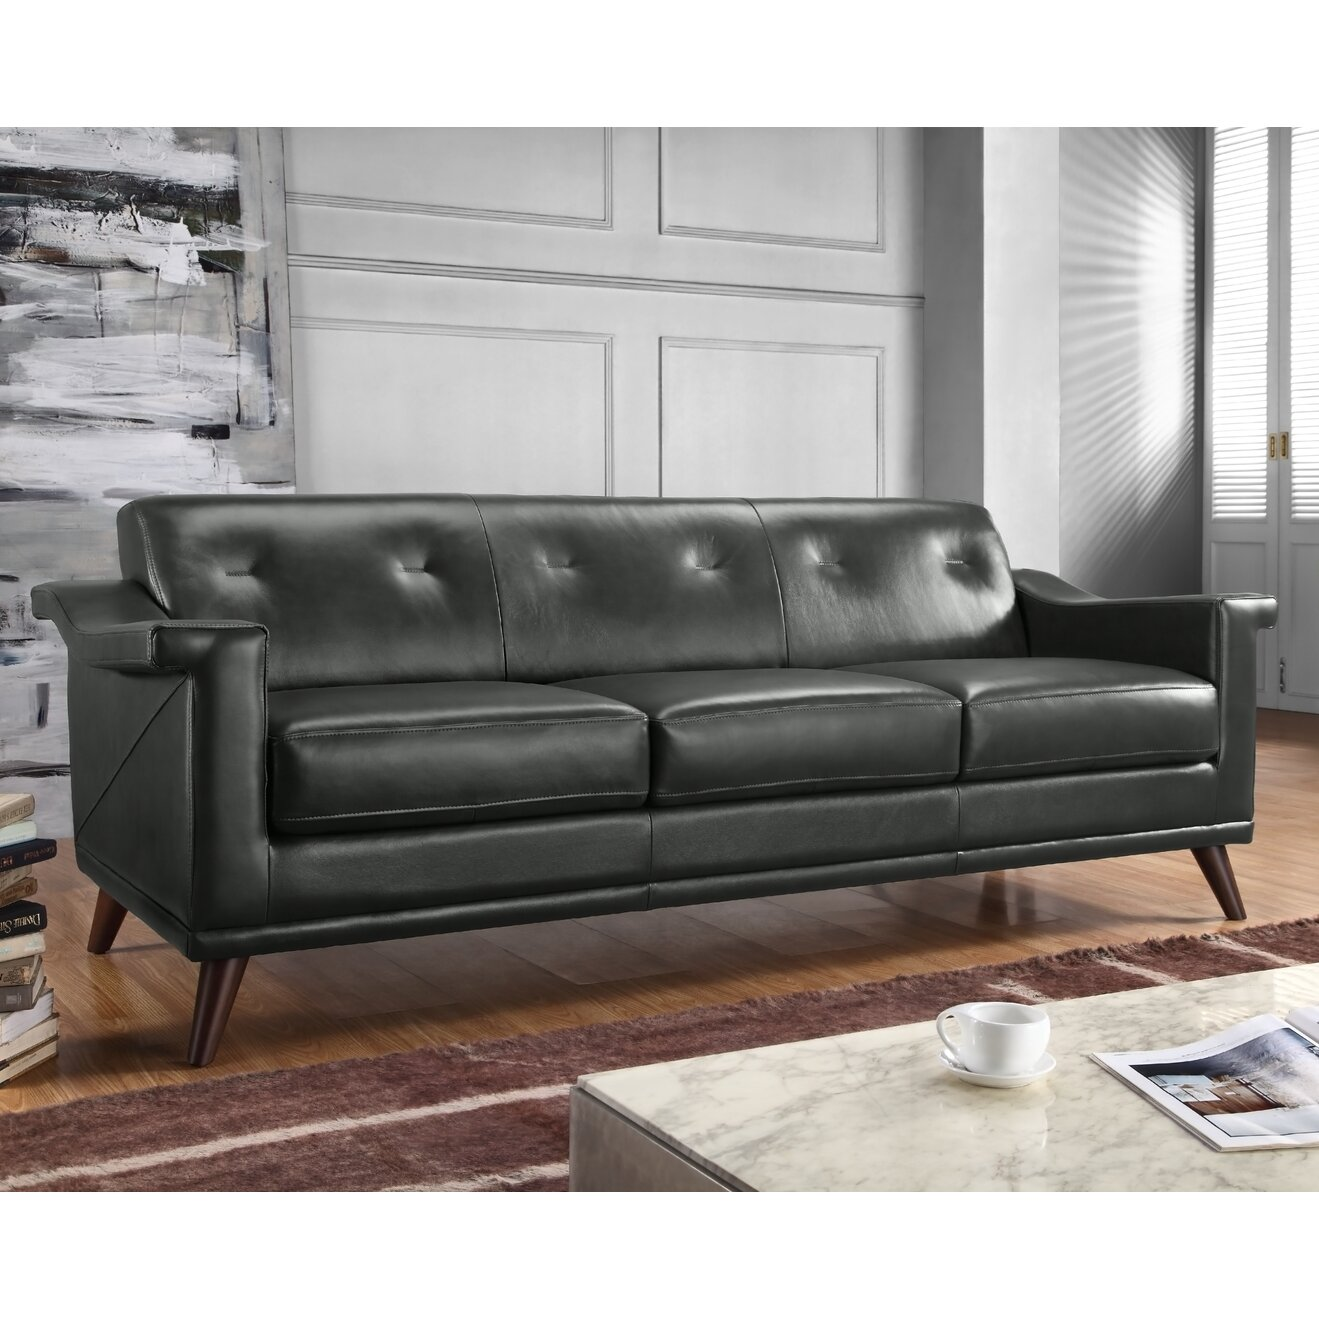 Full Grain Leather Sofas: Moroni Kak Full Top Grain Leather Sofa & Reviews